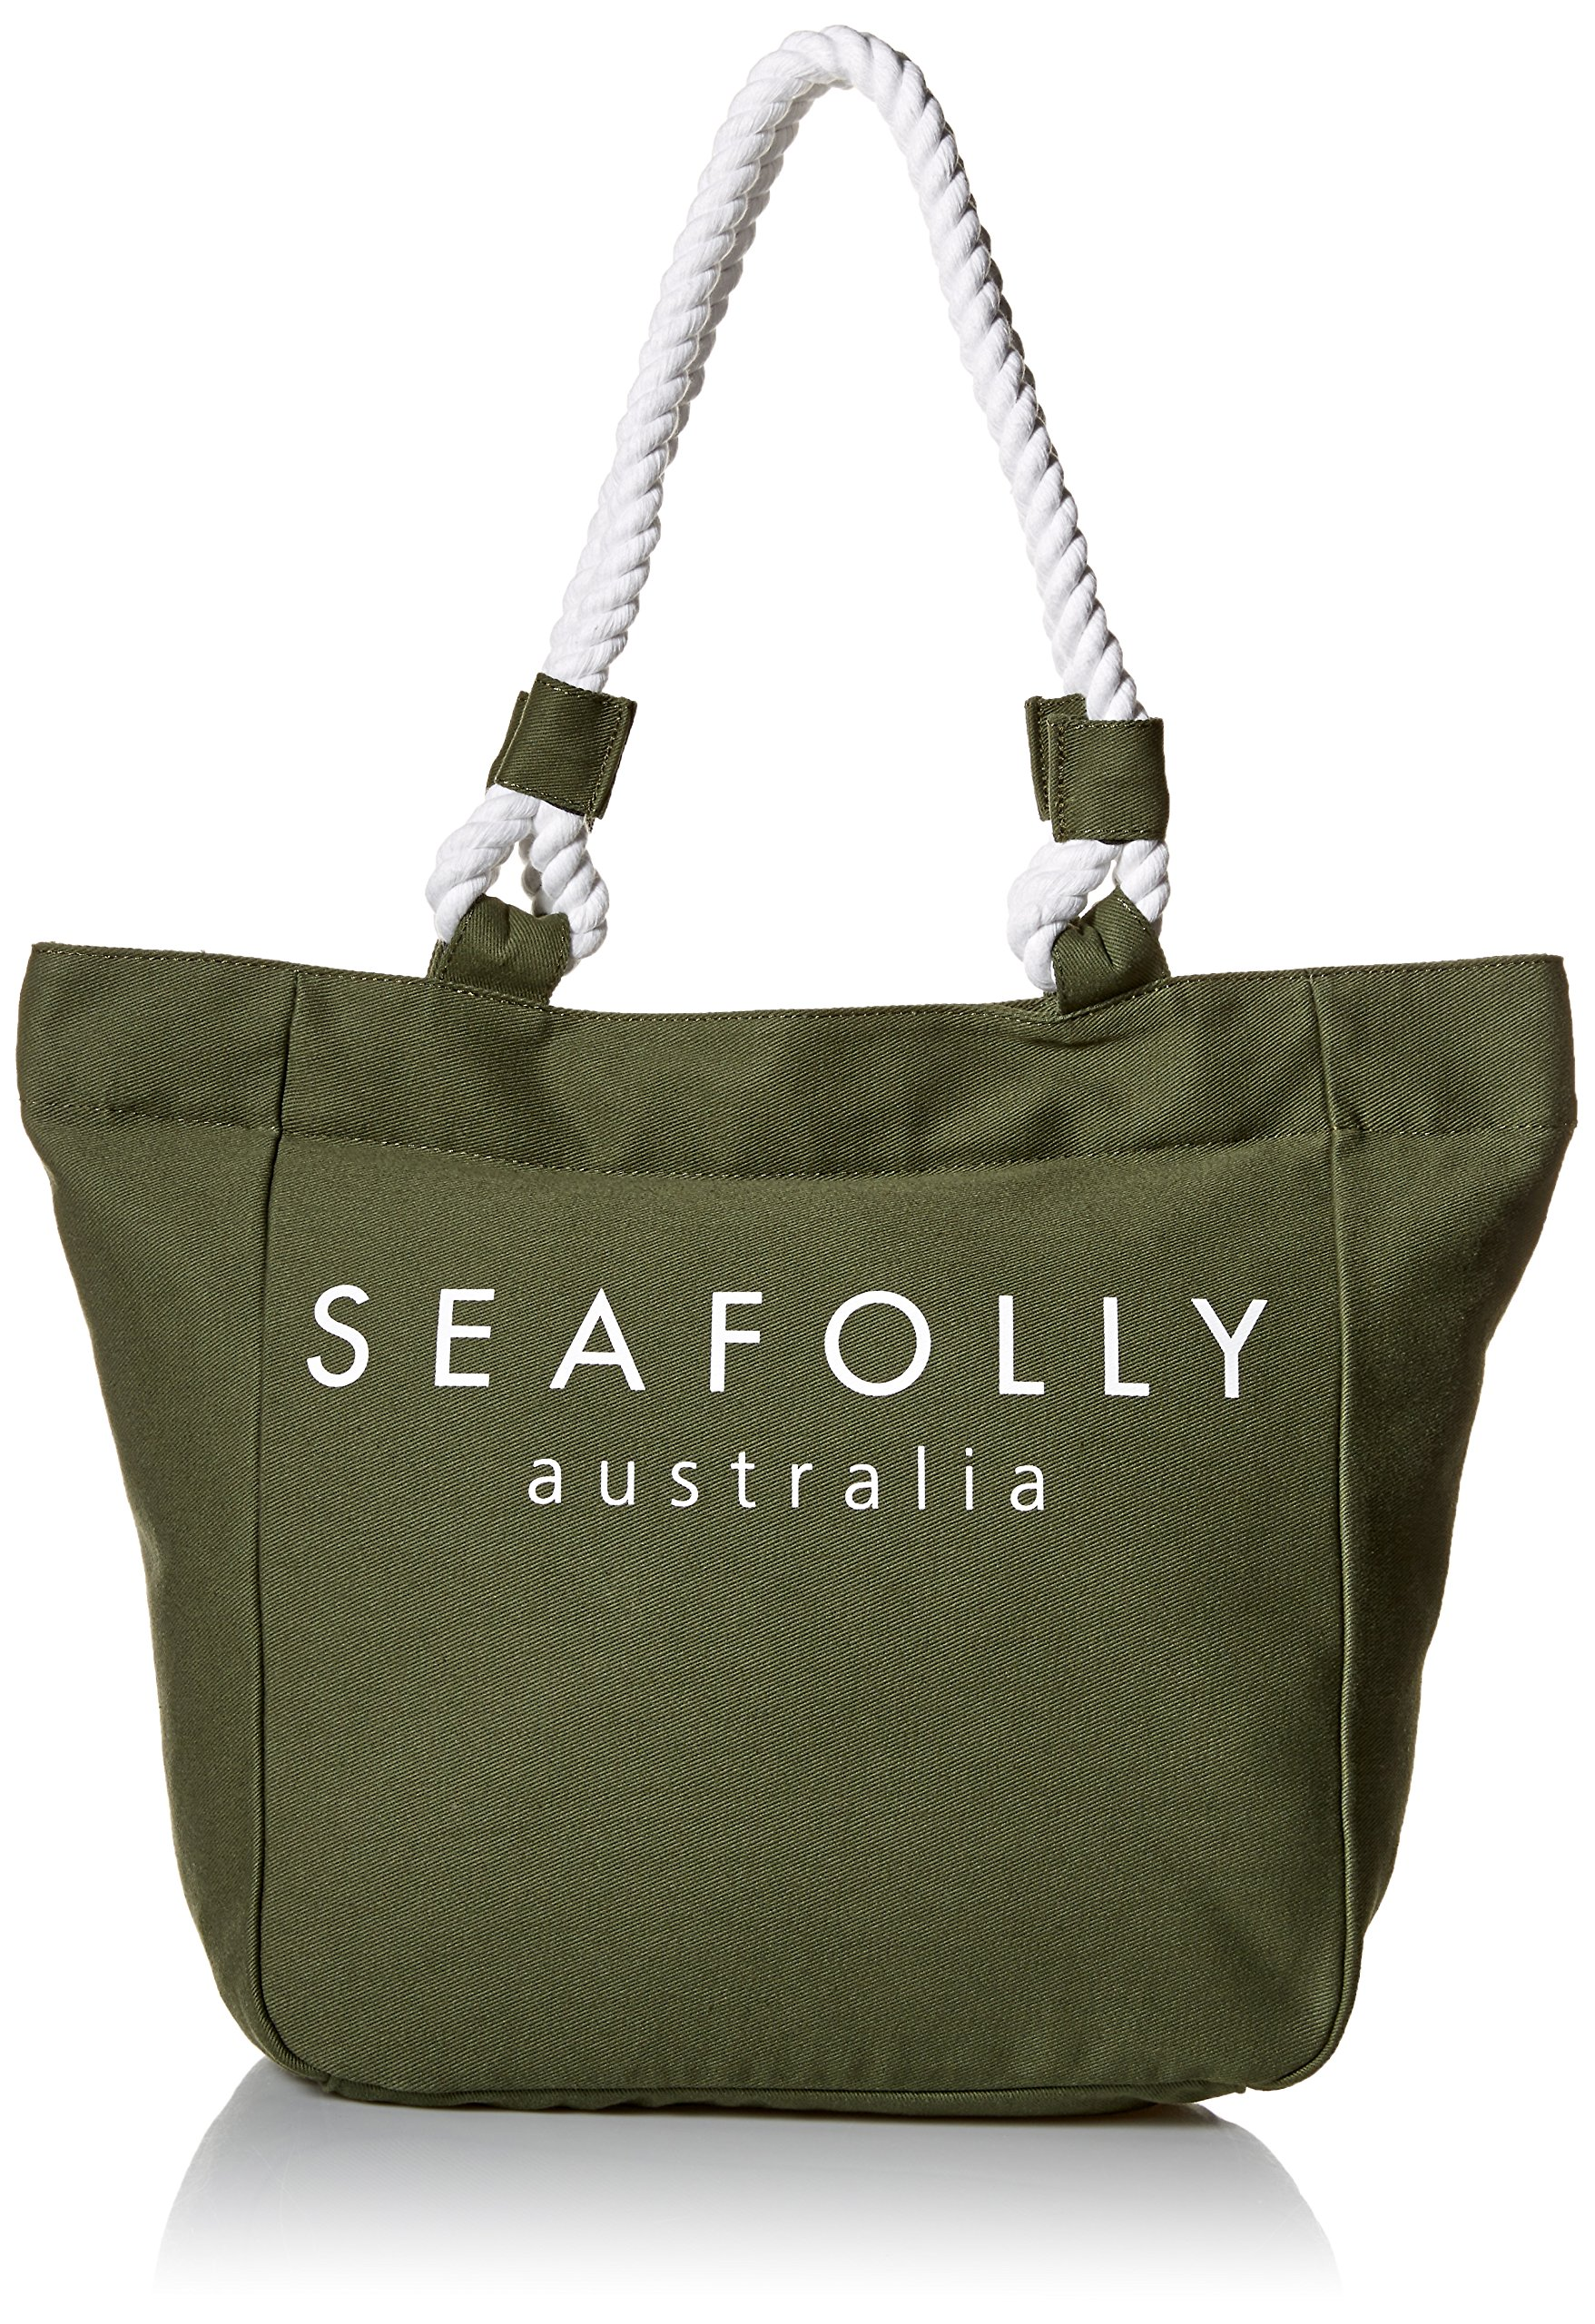 Seafolly Women's Canvas Rope Tote, Carried Away Dark Olive, One Size